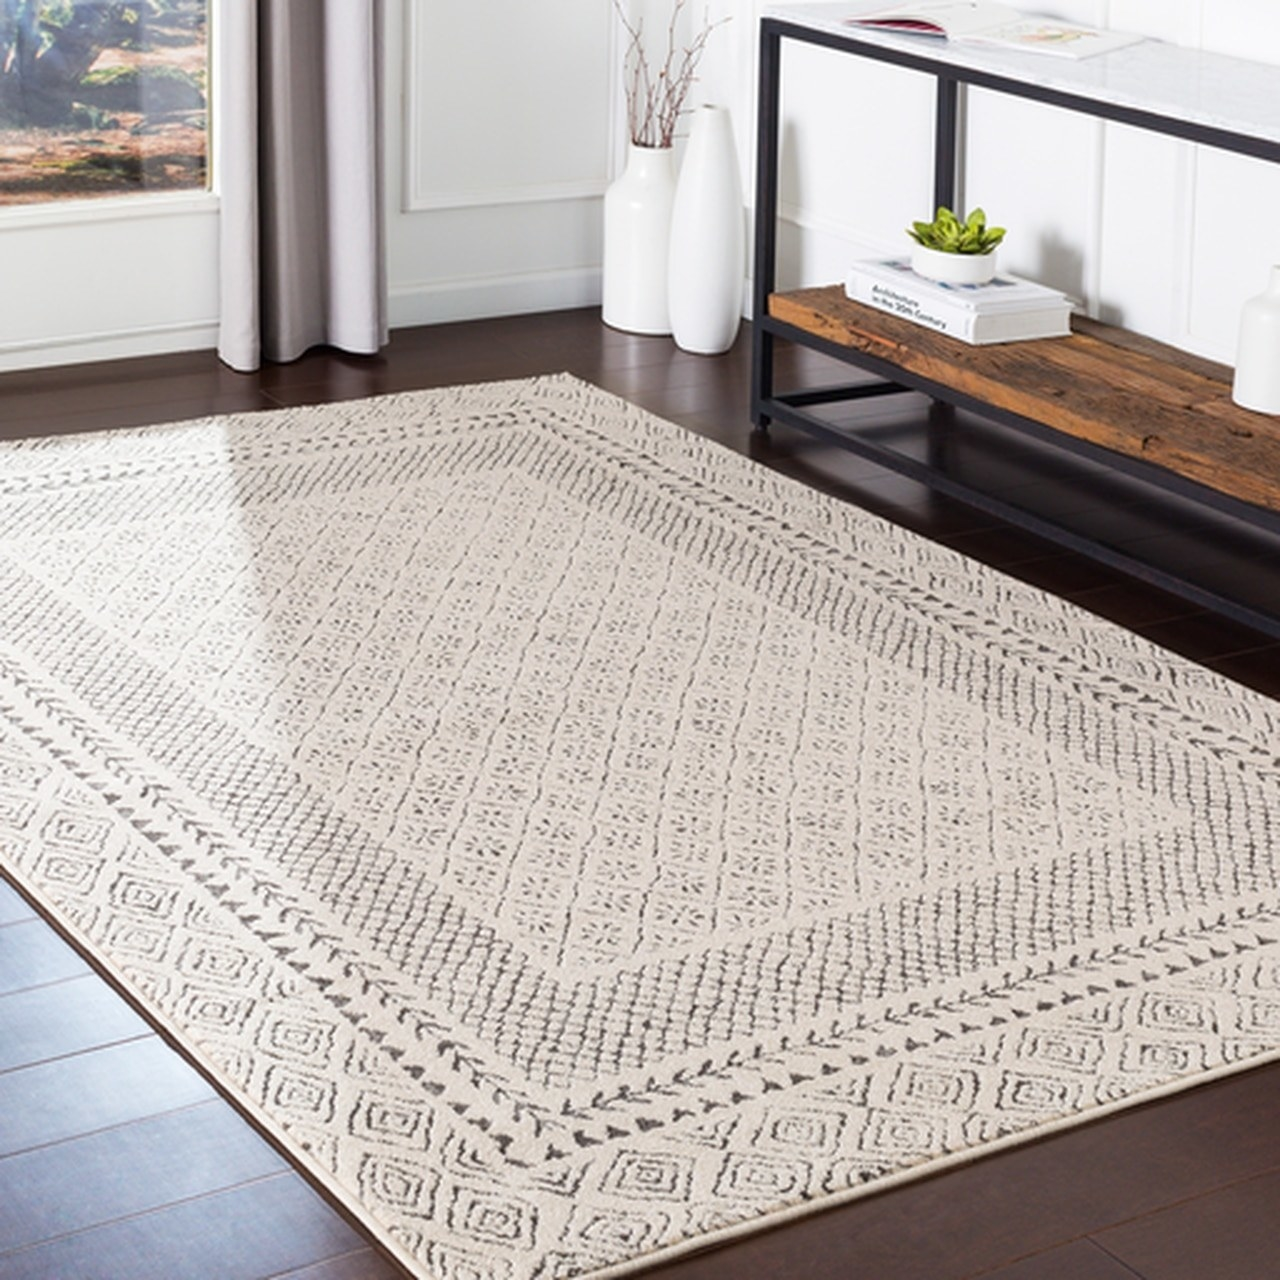 The beige and gray rug on a wooden floor